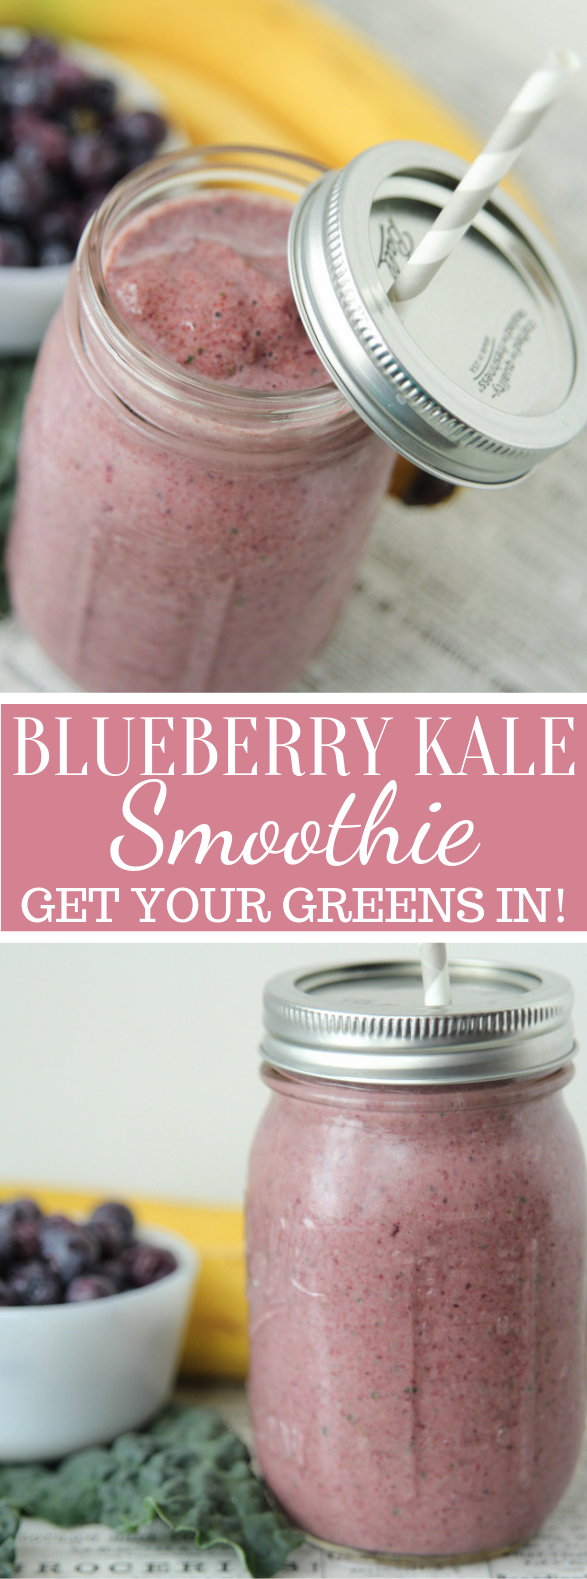 BLUEBERRY KALE SMOOTHIE – GET YOUR GREENS IN! #drink #healthydrink